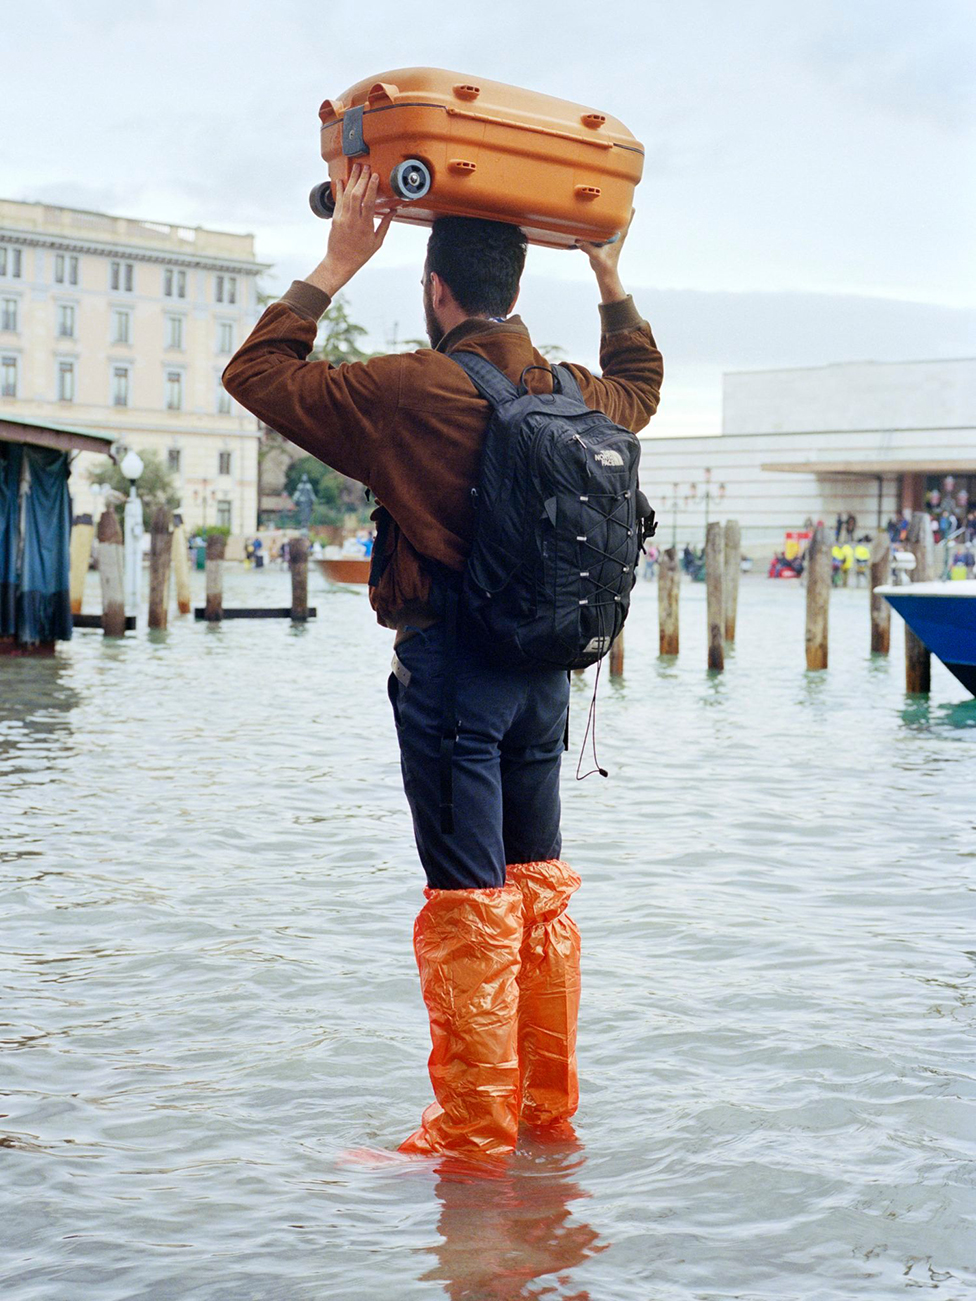 A man standing in high water in Venice, Italy.